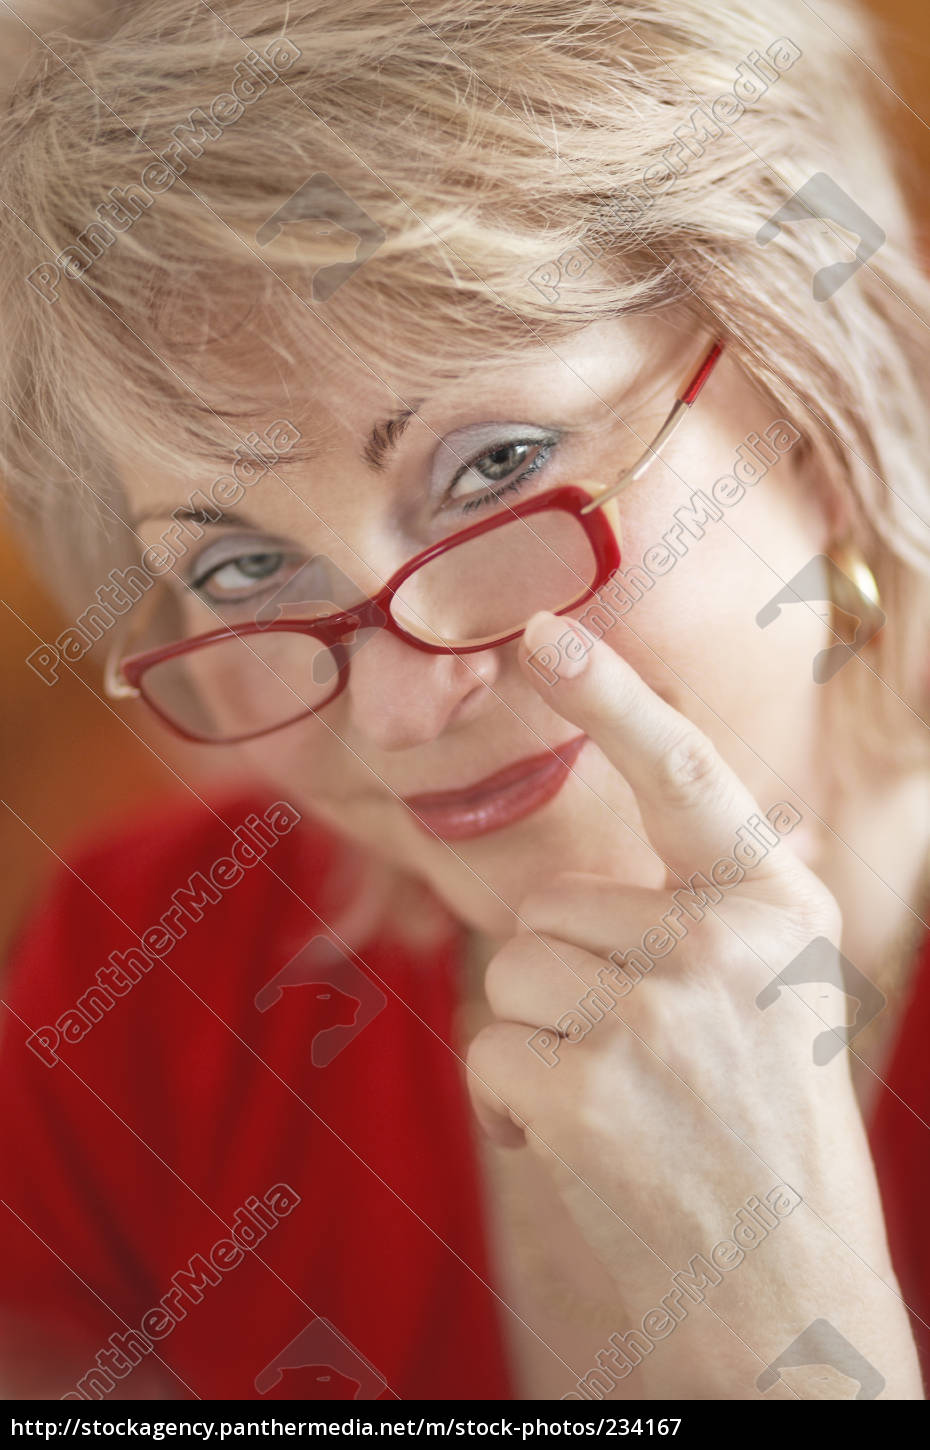 behind, red, glasses - 234167